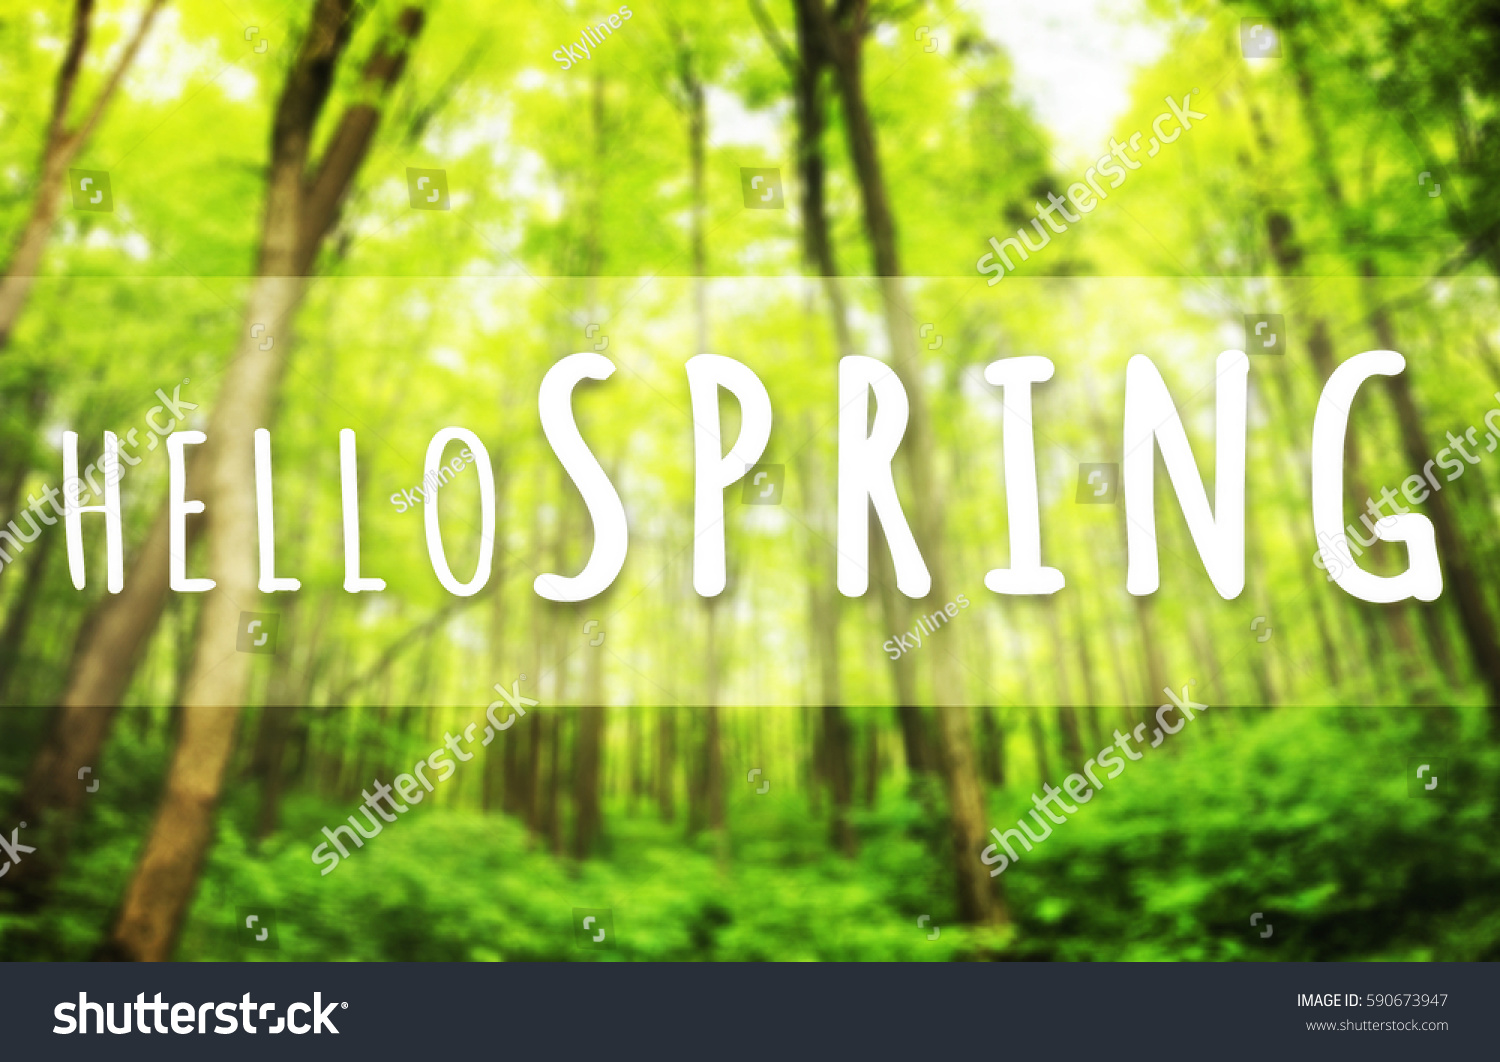 Beautiful greeting card words welcome spring stock photo 590673947 beautiful greeting card words welcome spring stock photo 590673947 shutterstock m4hsunfo